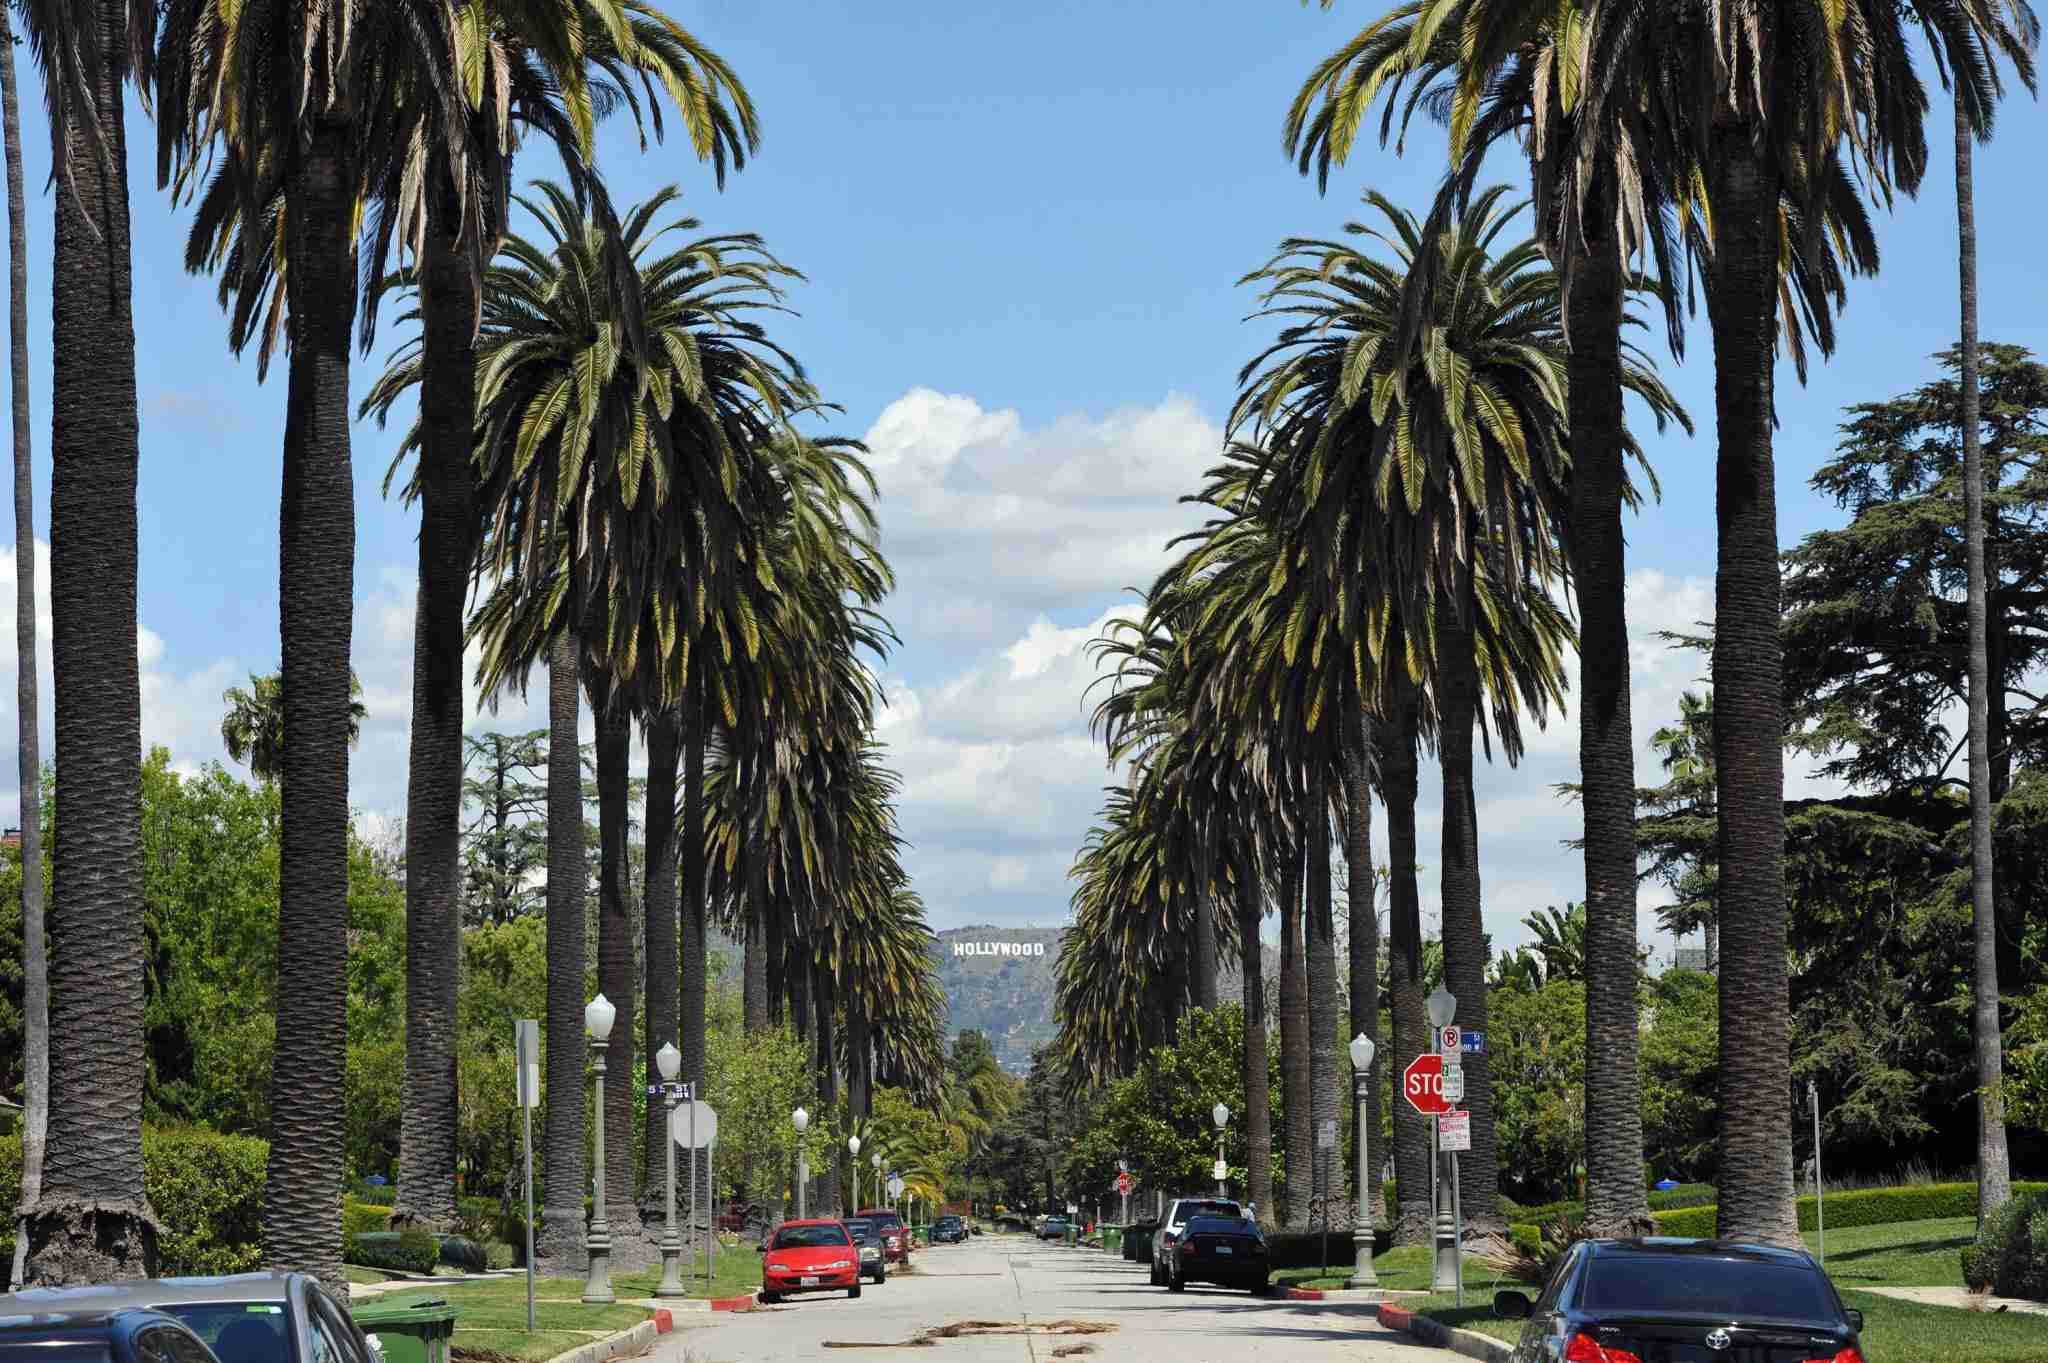 Windsor Boulevard lined with Palm trees looking towards the Hollywood sign. (Photo courtesy of